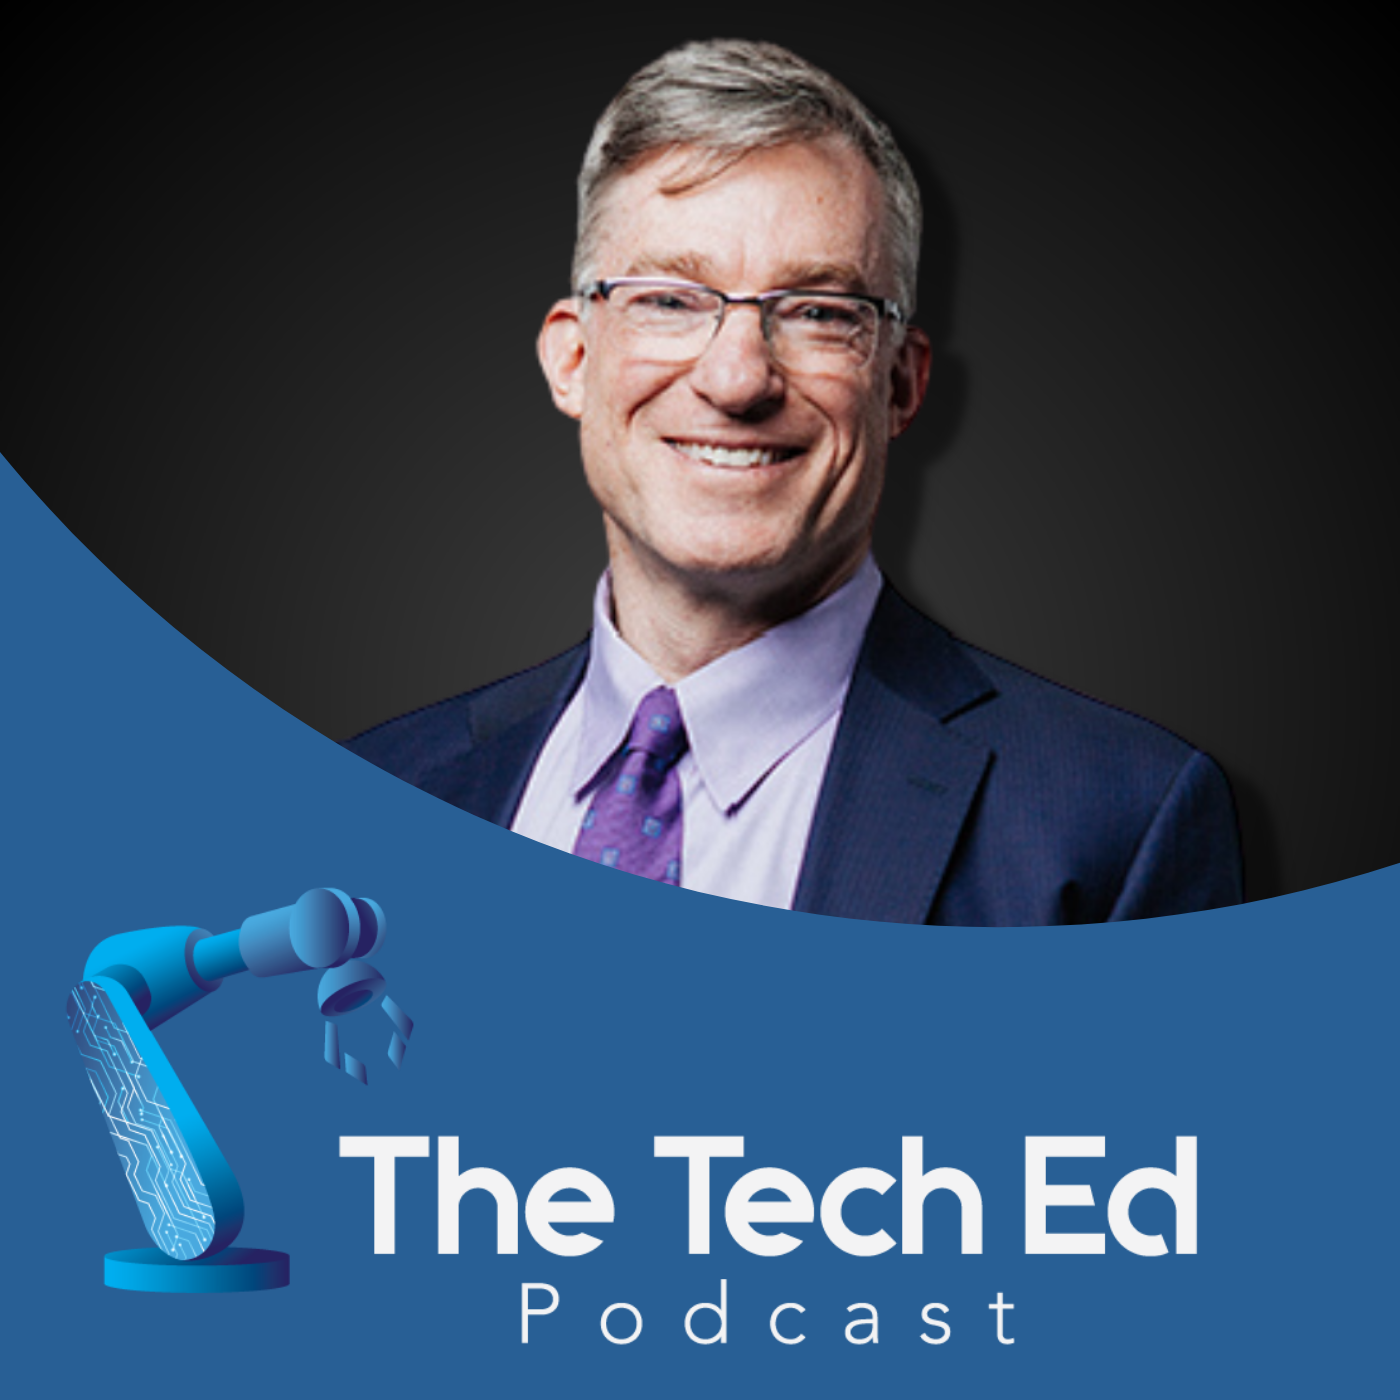 Blake Moret on The TechEd Podcast